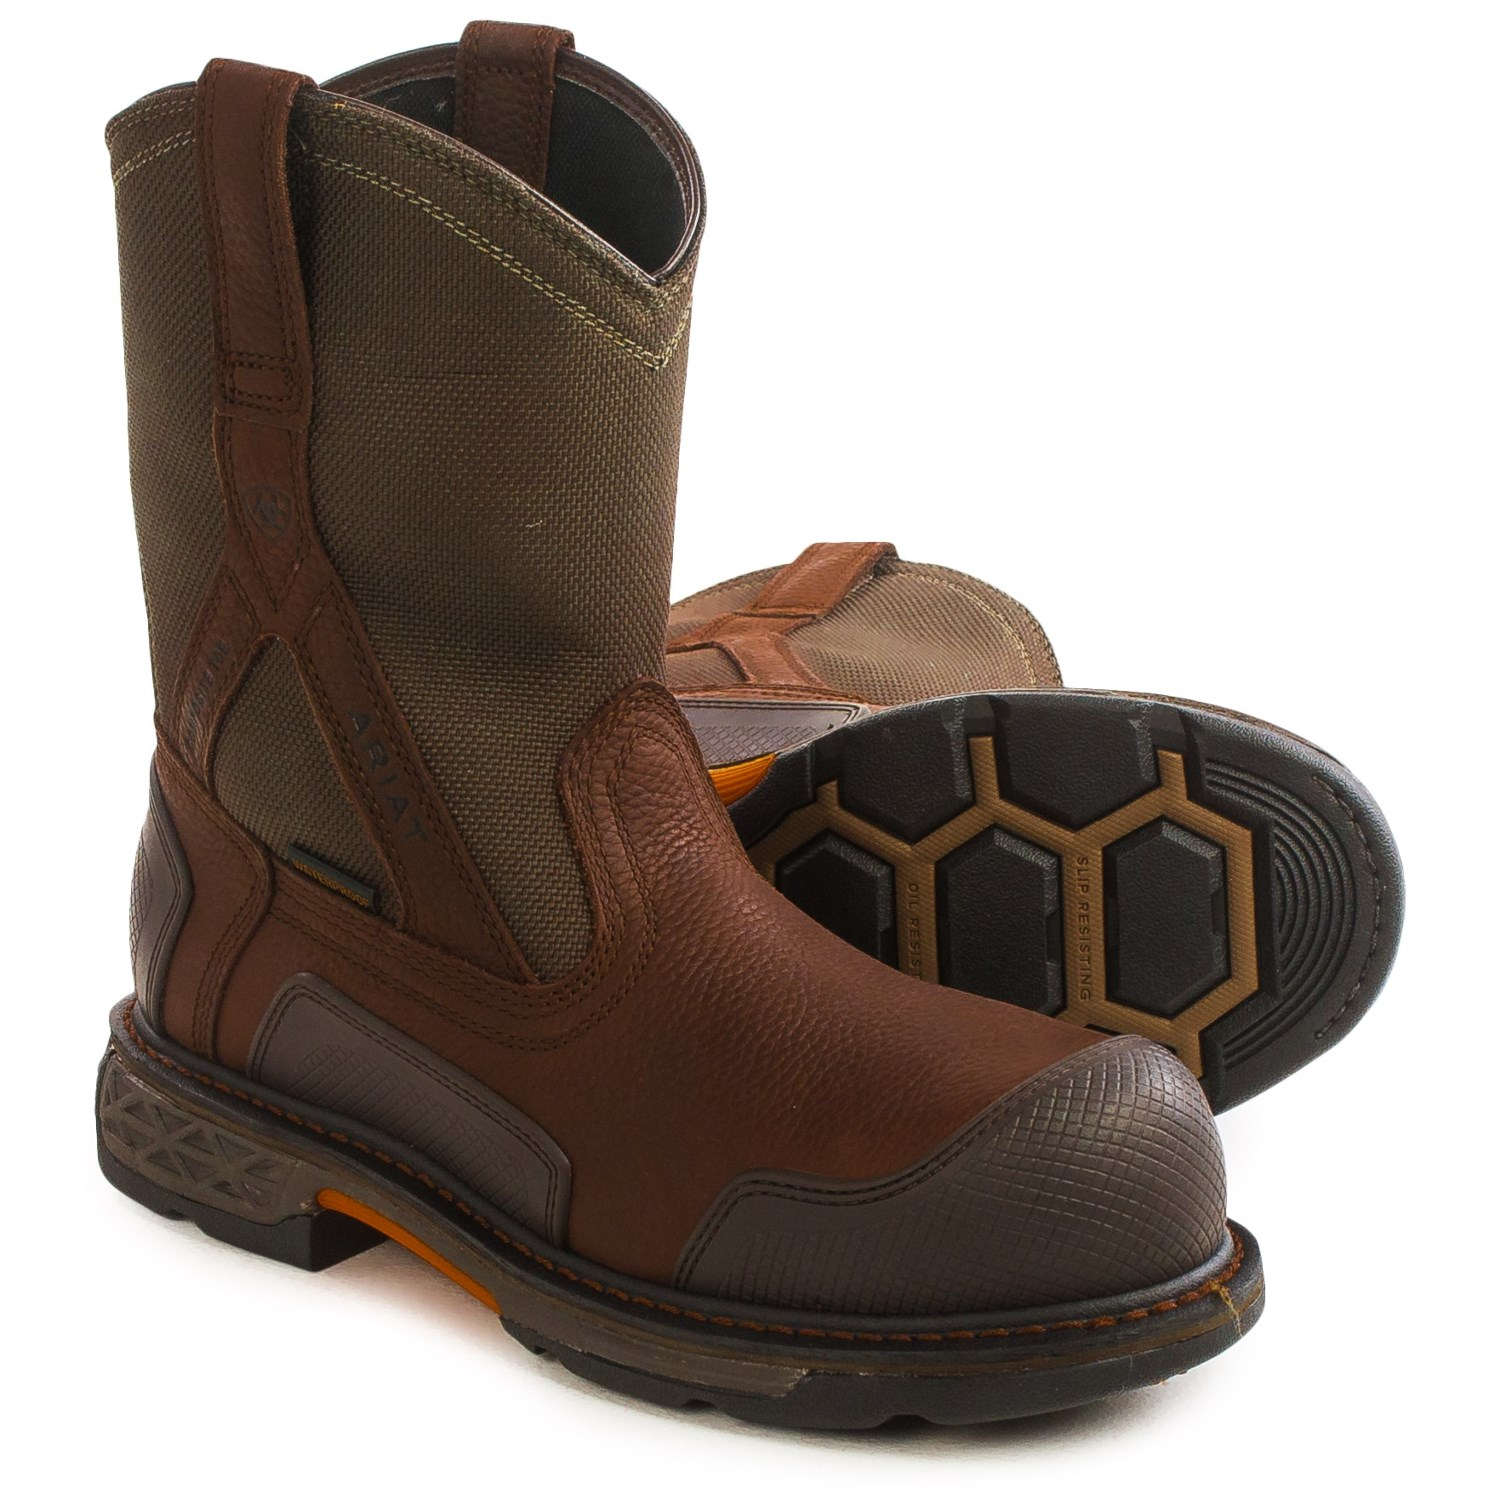 Mens Waterproof Work Boots Clearance